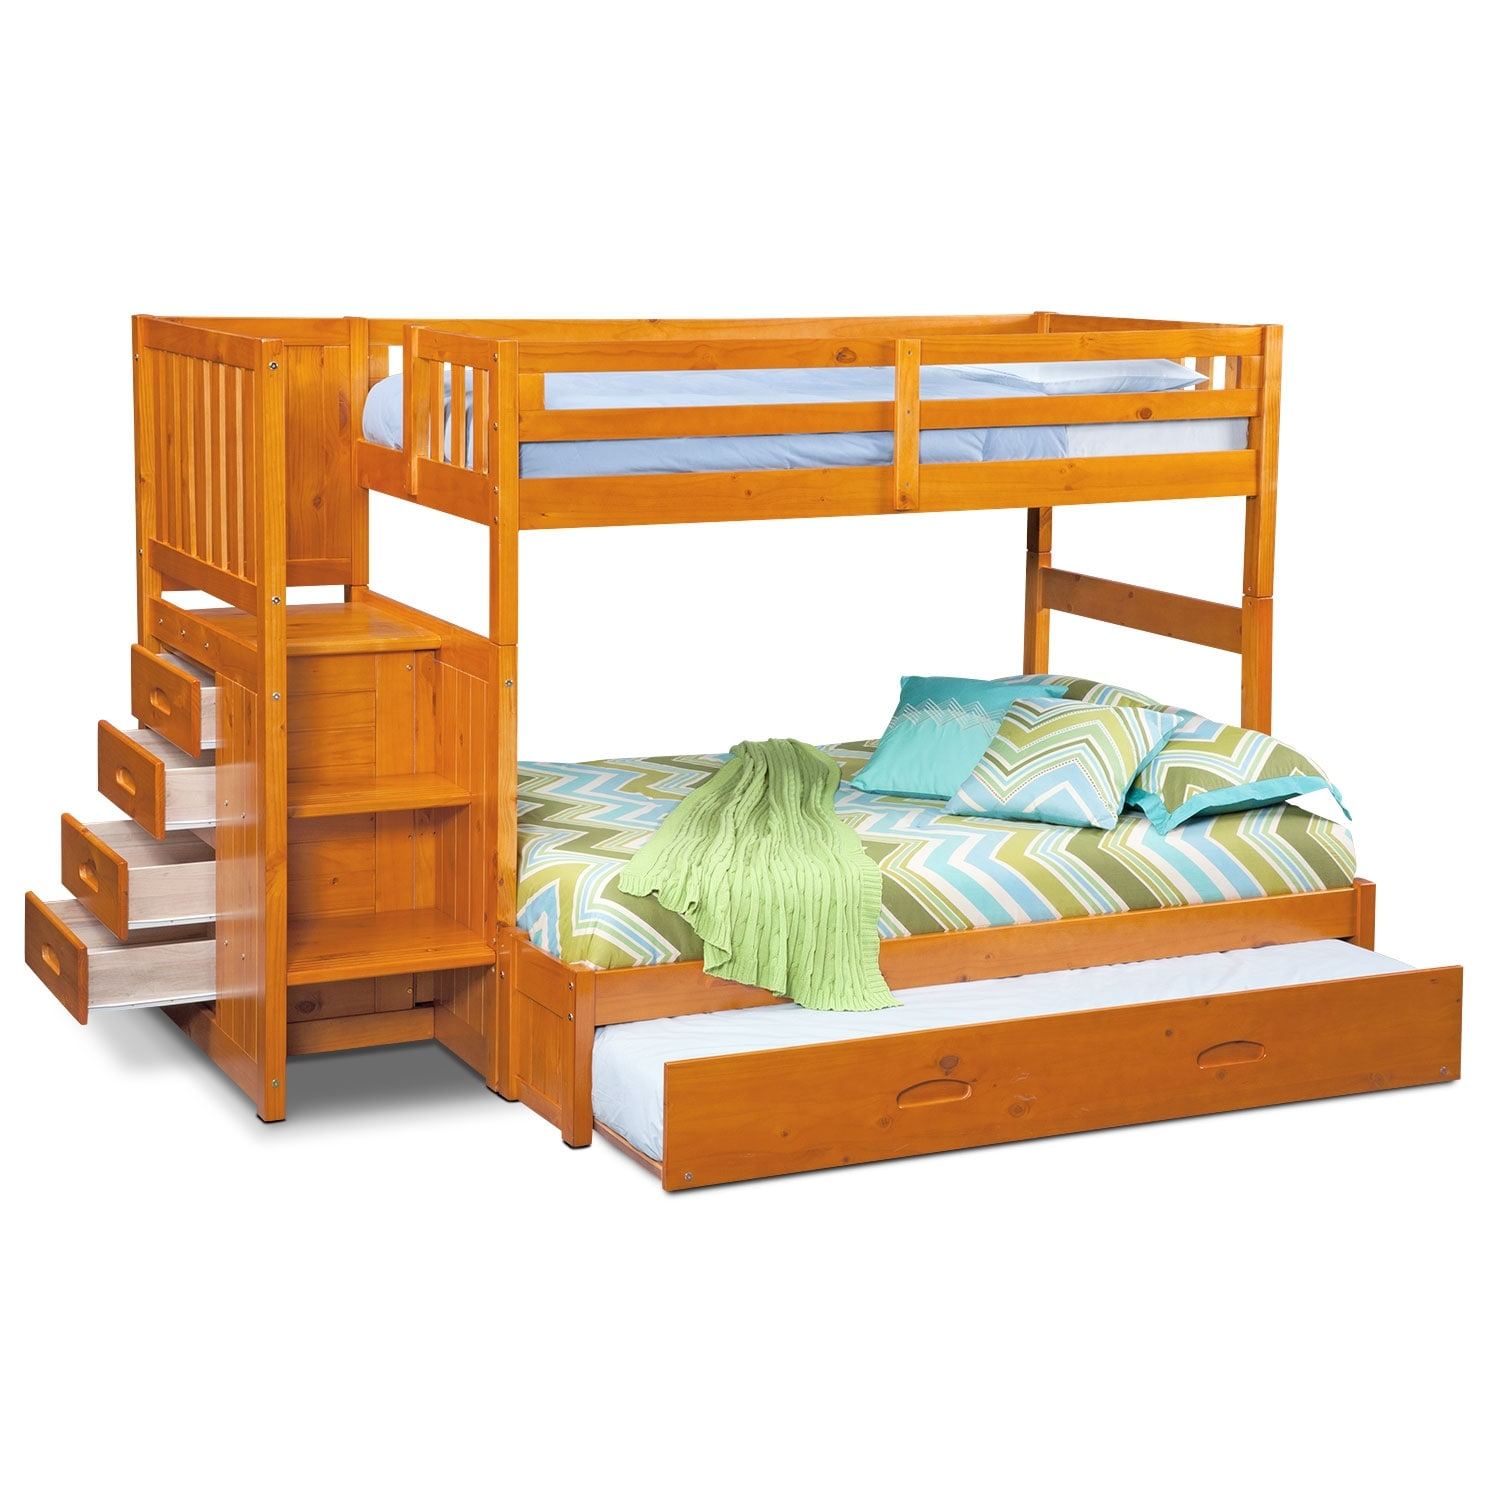 ranger twin over full bunk bed with storage stairs trundle pine american signature furniture. Black Bedroom Furniture Sets. Home Design Ideas